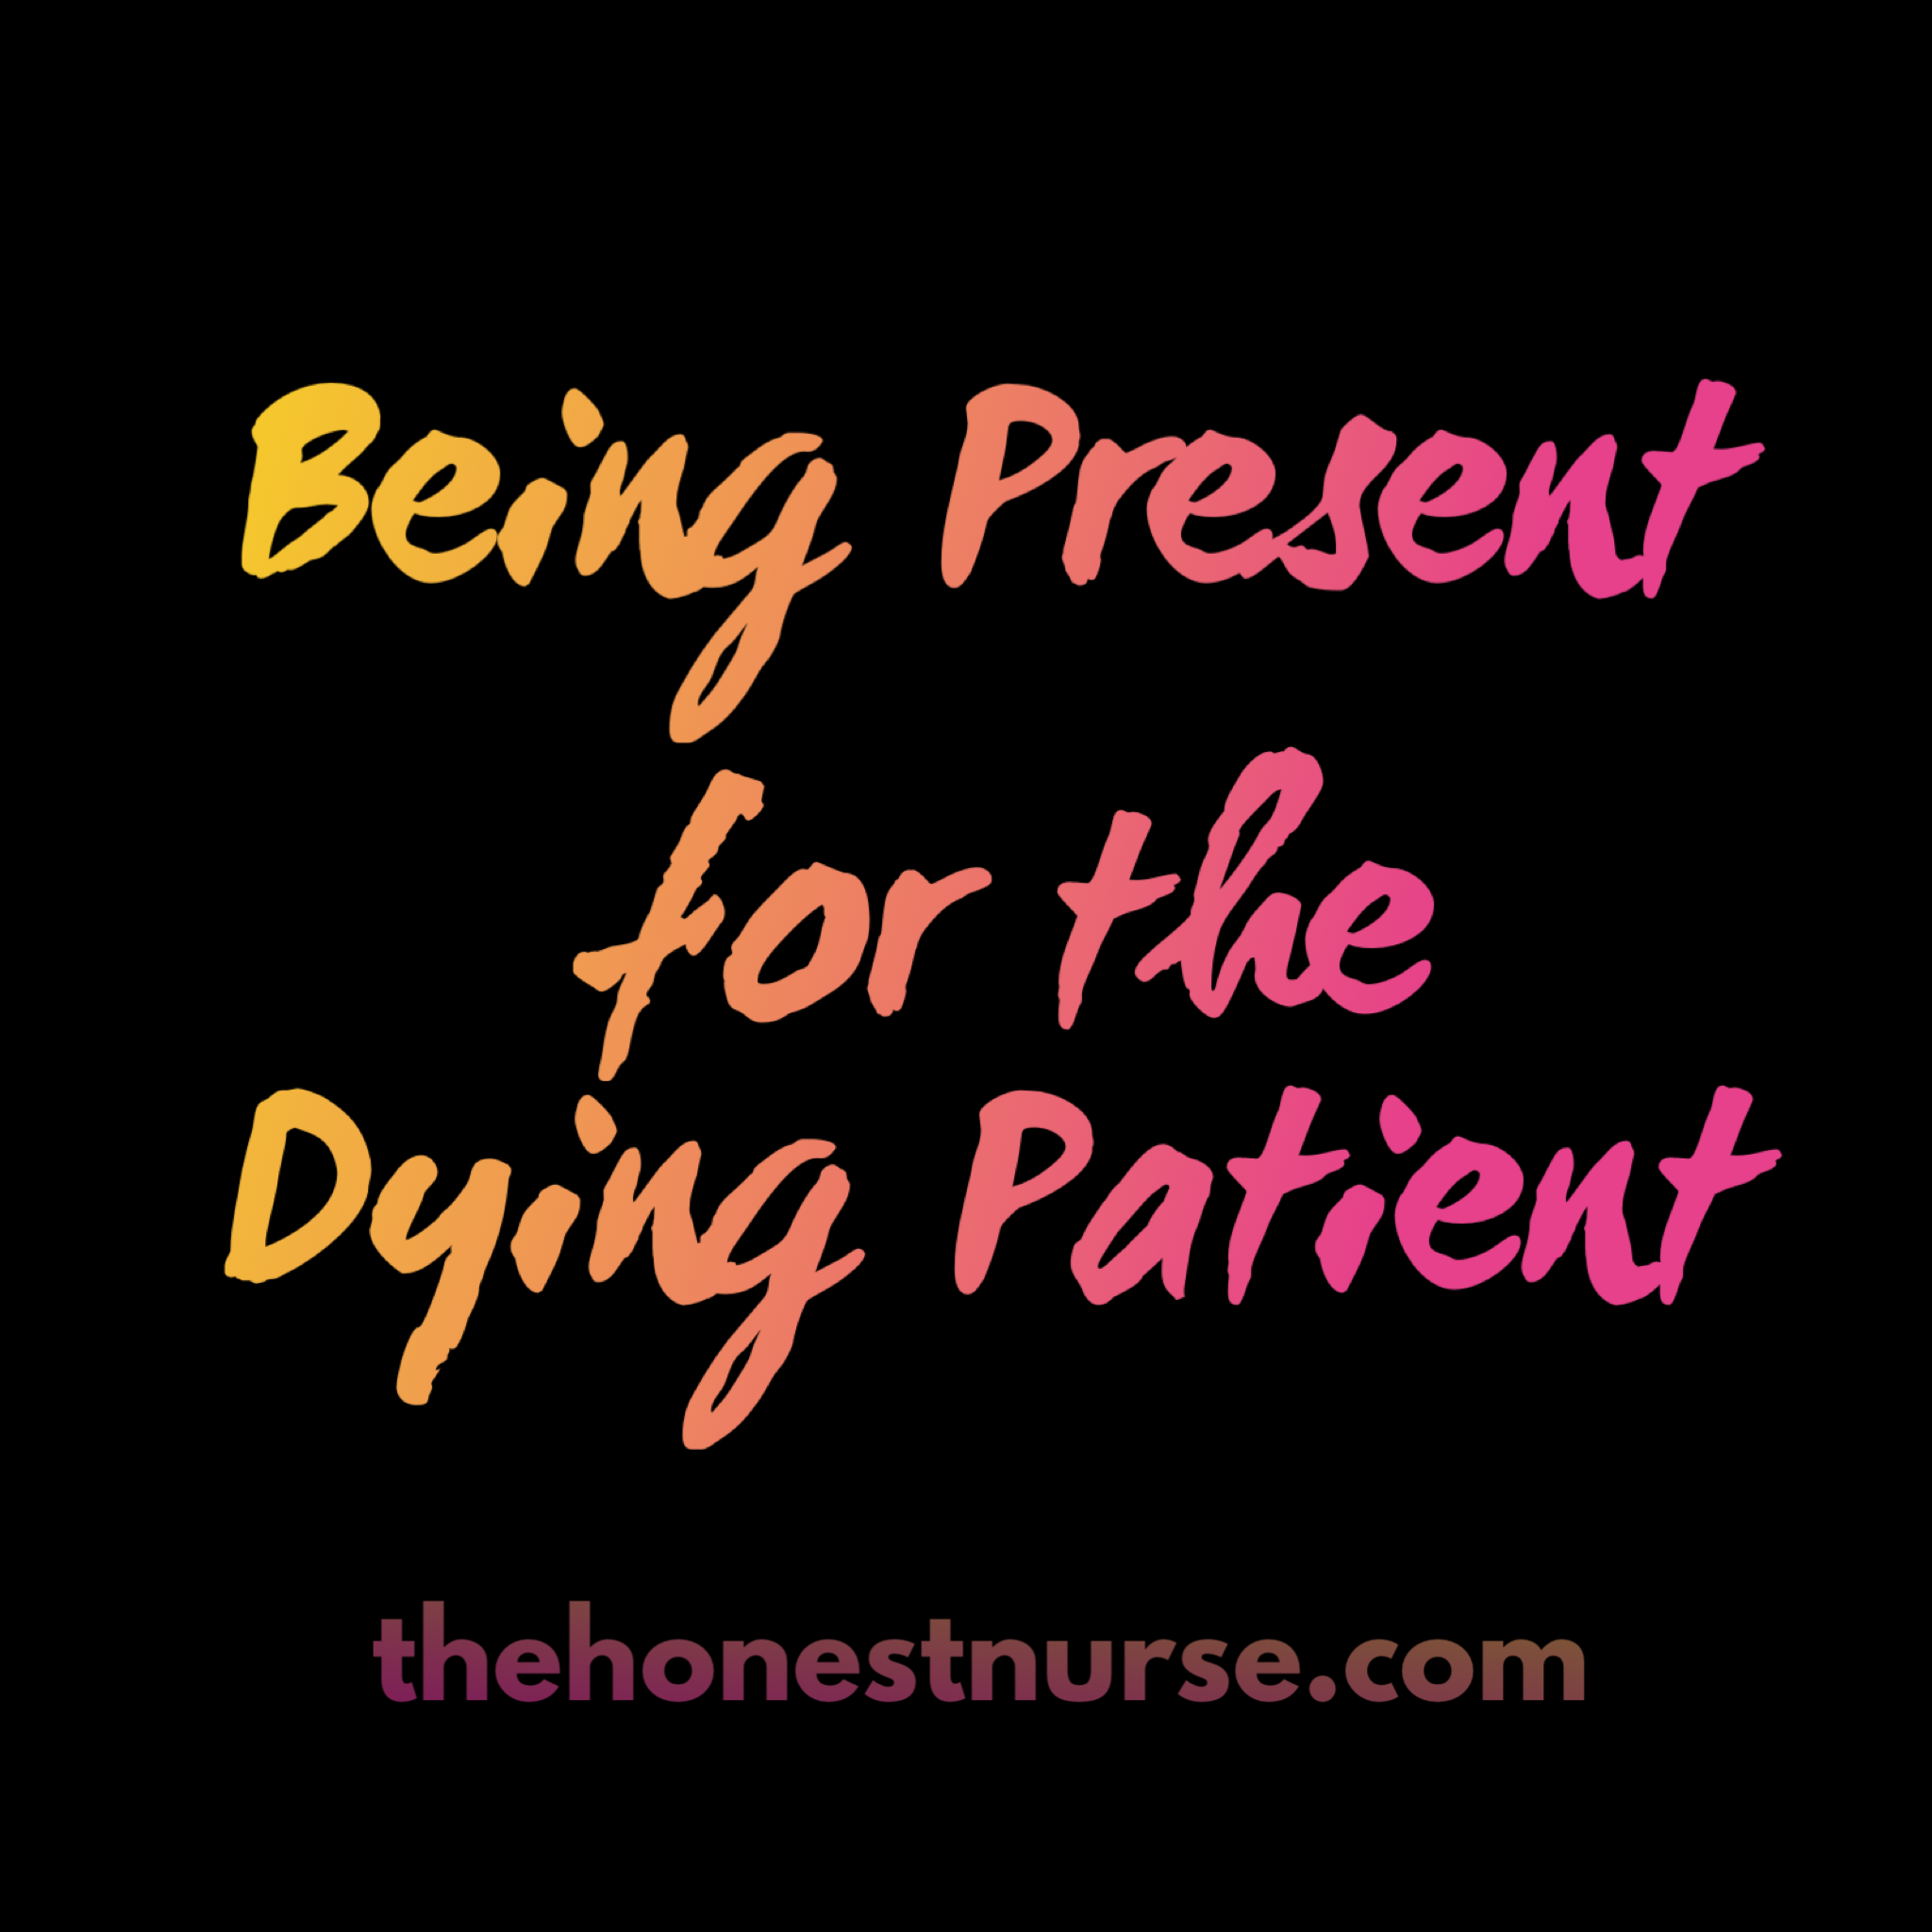 12. Being present for the dying patient - Caring for the dying patient: How to be present for the patient and family while also taking care of yourself.